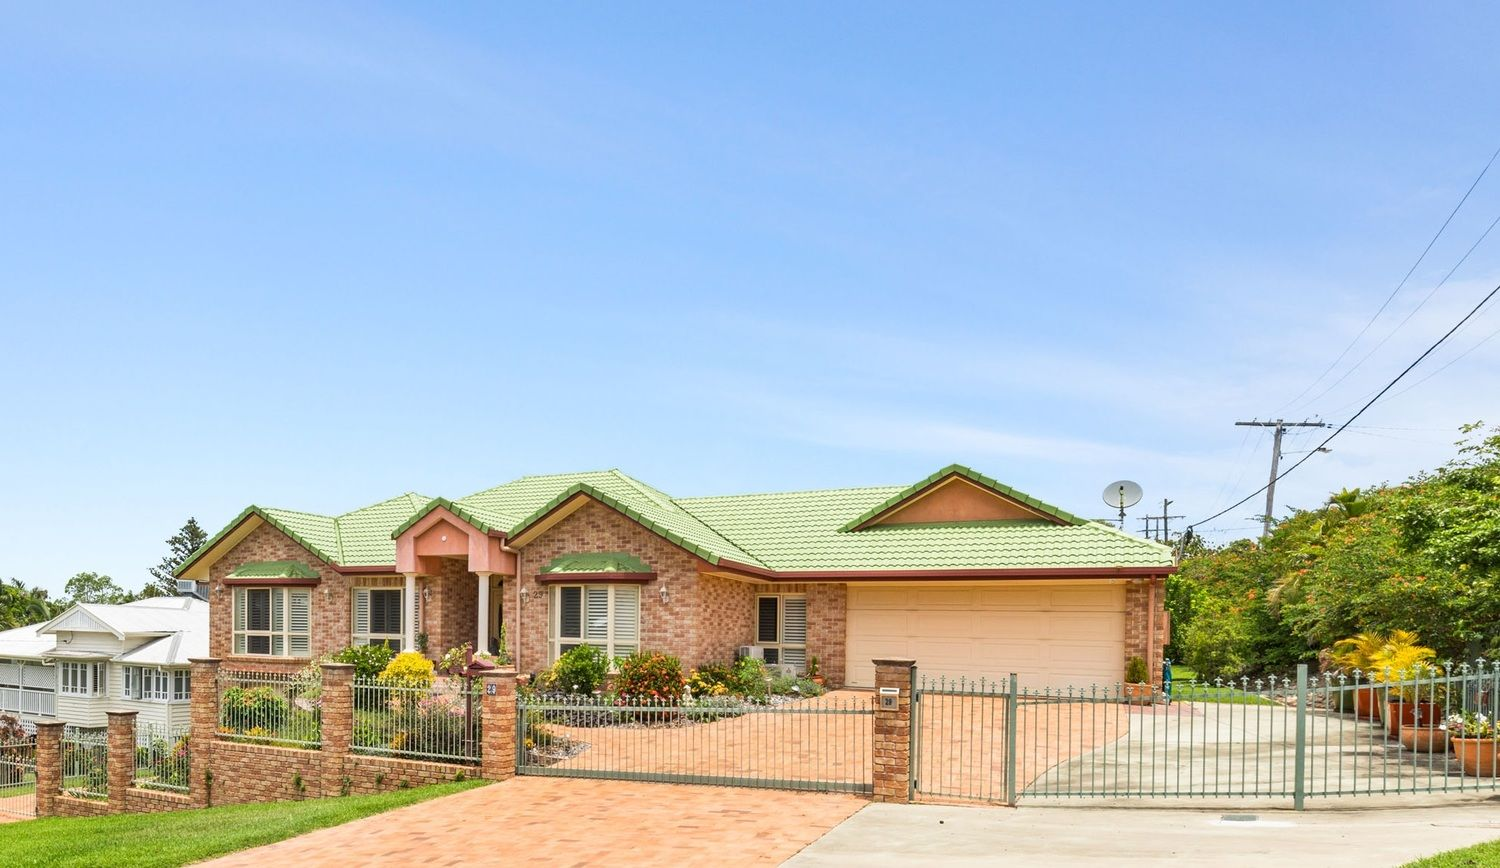 29 Brecknell Street, The Range QLD 4700, Image 0